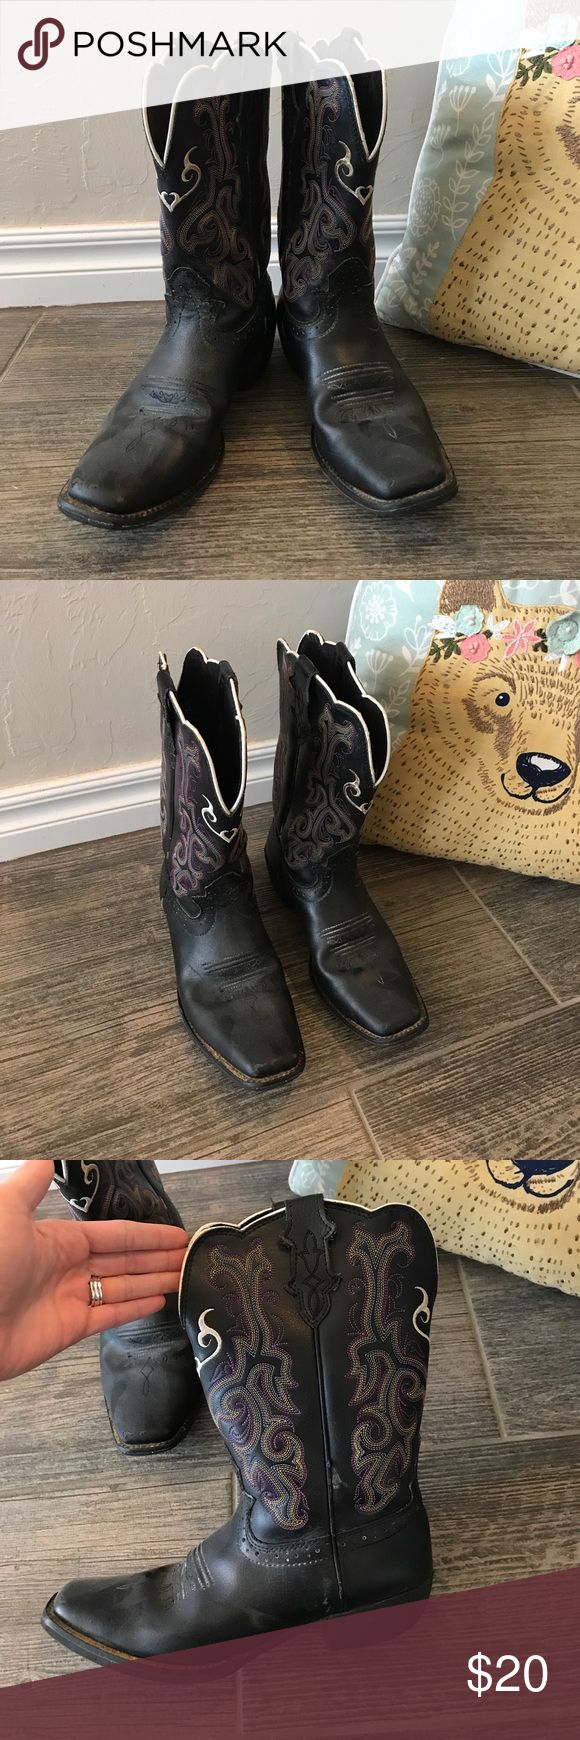 Justin's girls black cowboy boots / cowgirl boots Black boots with purple, white, yellow stitching size 3d. Cute heart designs. Purchased a couple of years ago to wear as a flower girl in a wedding. Justin Boots Shoes Boots